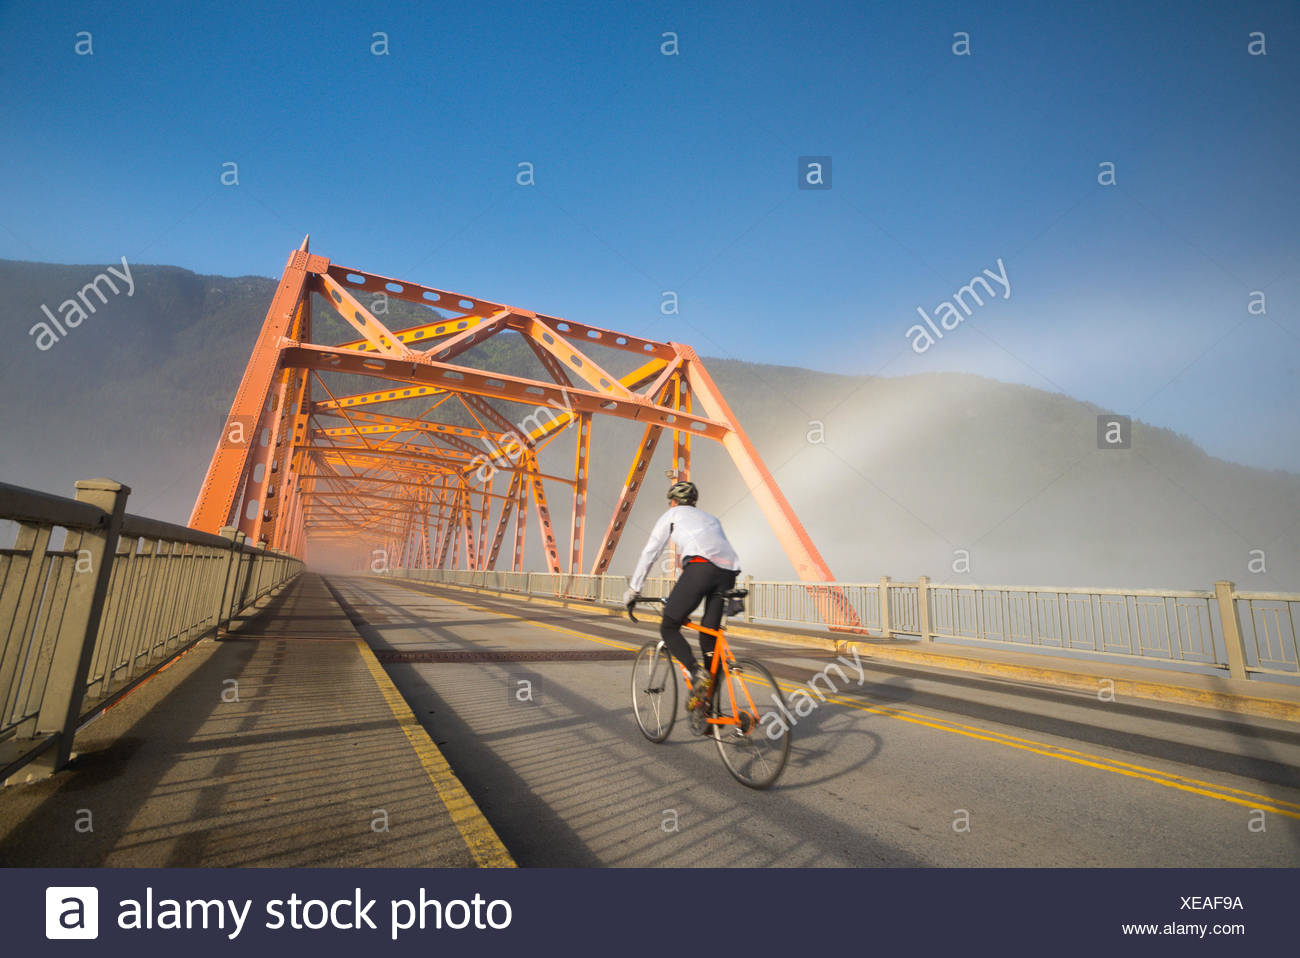 A man rides his road bike on the commute while a brockenspectre shines behind him in Nelson, BC - Stock Image